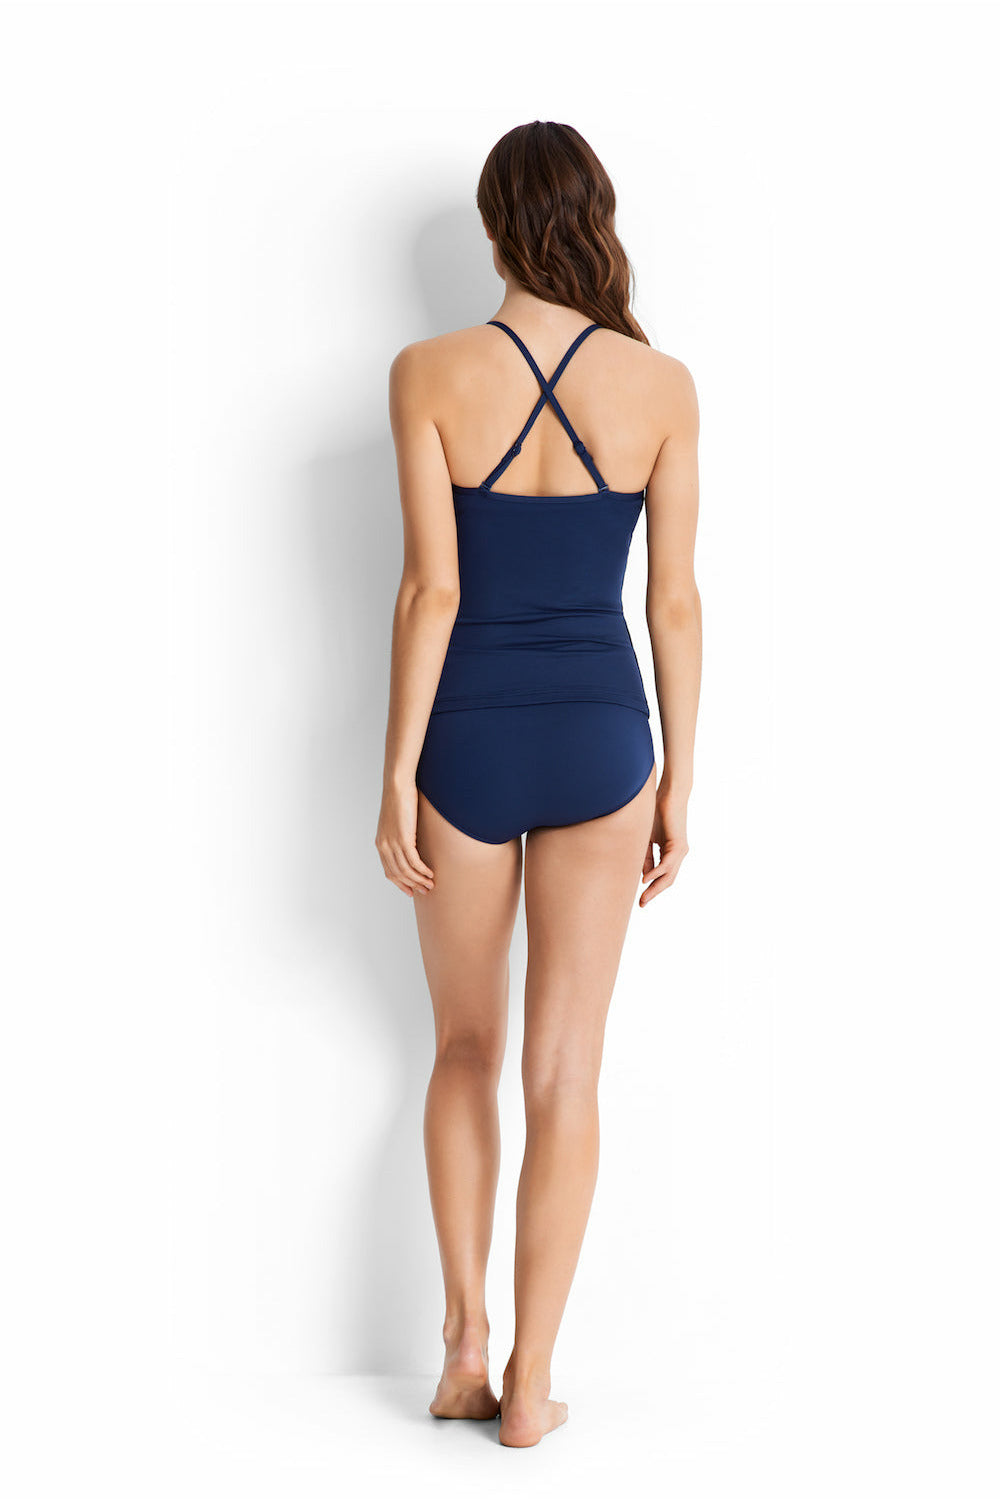 Seafolly - Essentials Twist Halter Singlet - Indigo